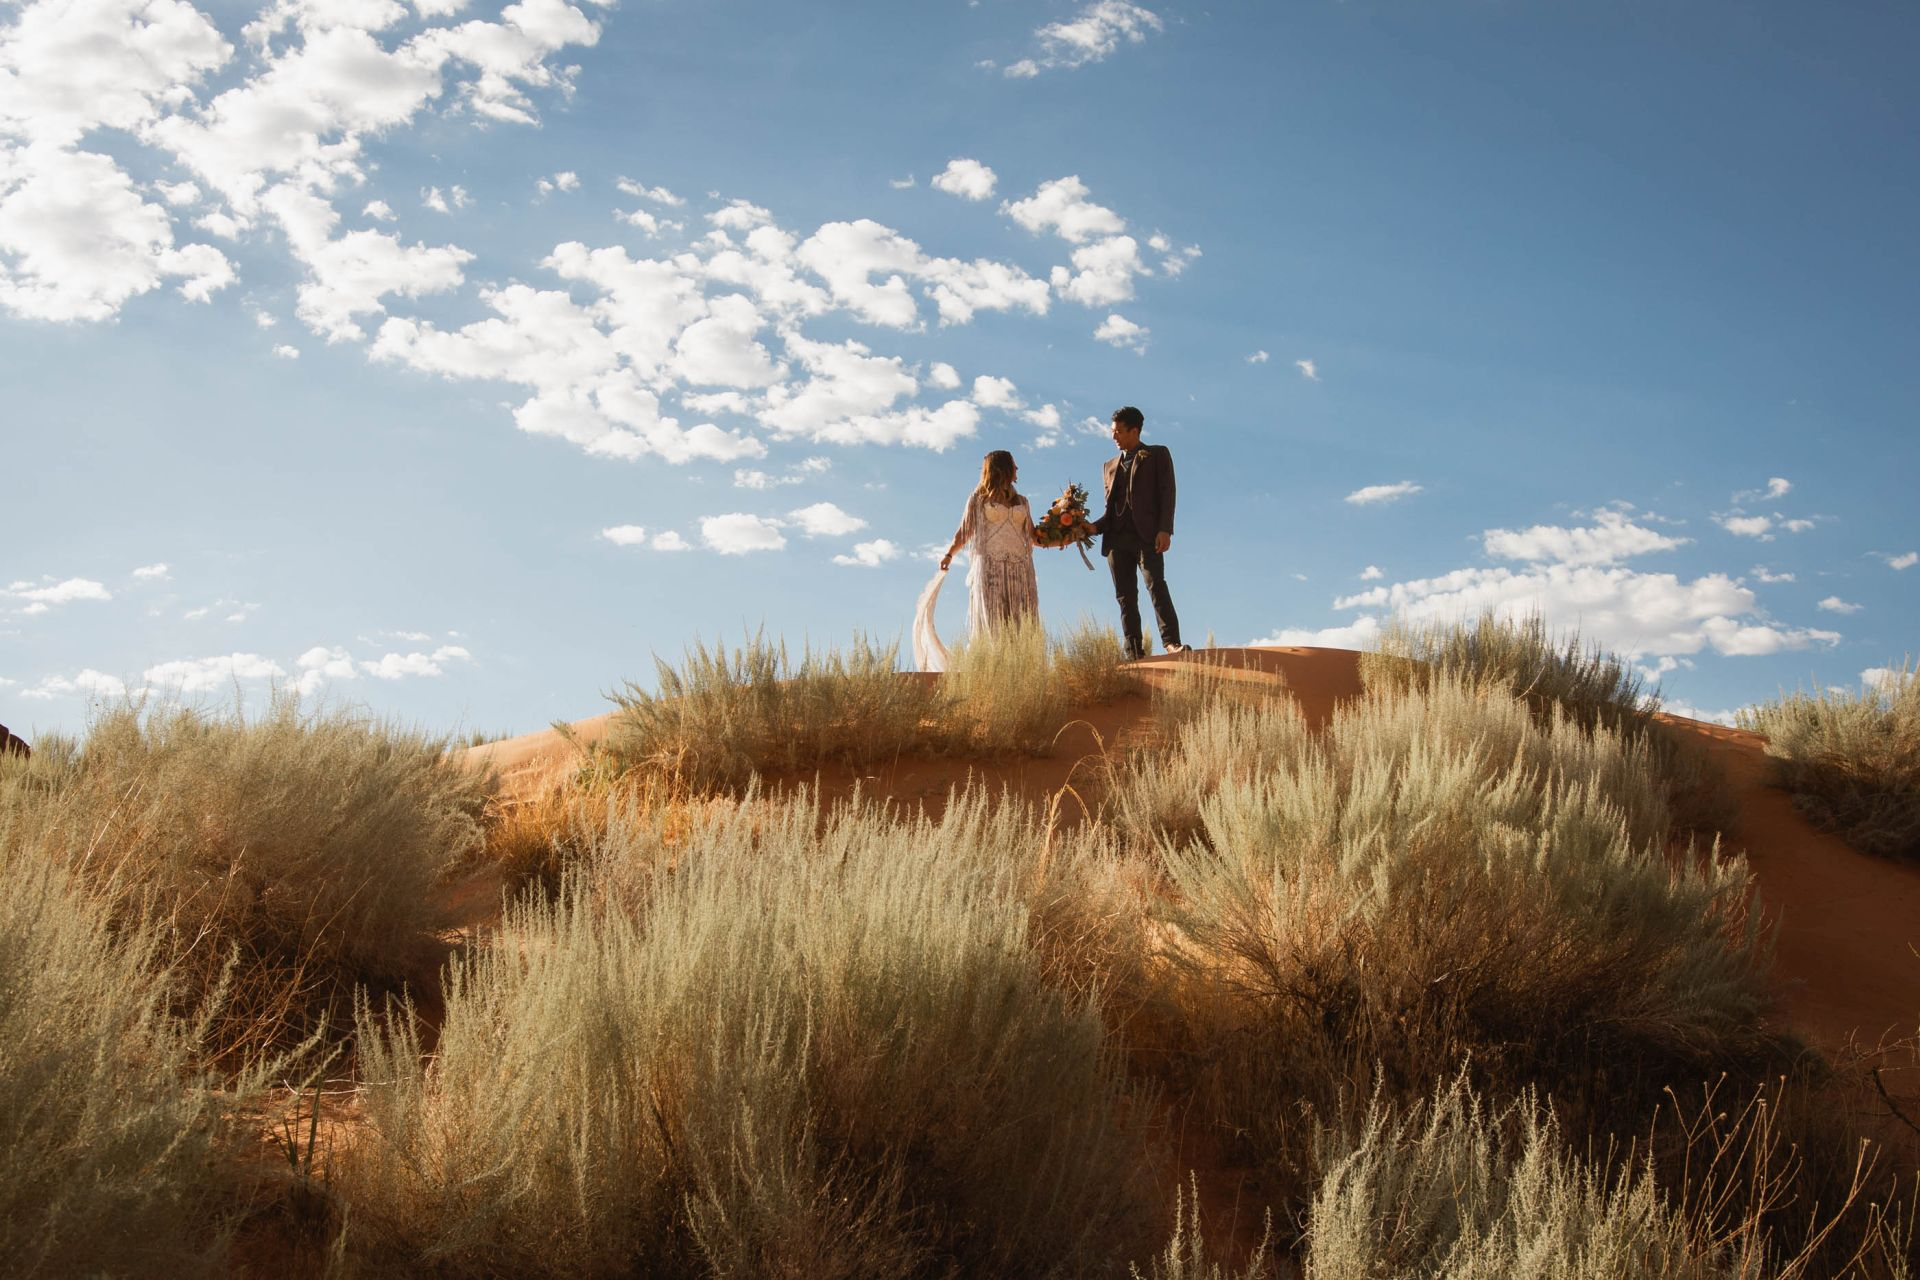 Elopement wedding utah desert - couple on top of sand dune